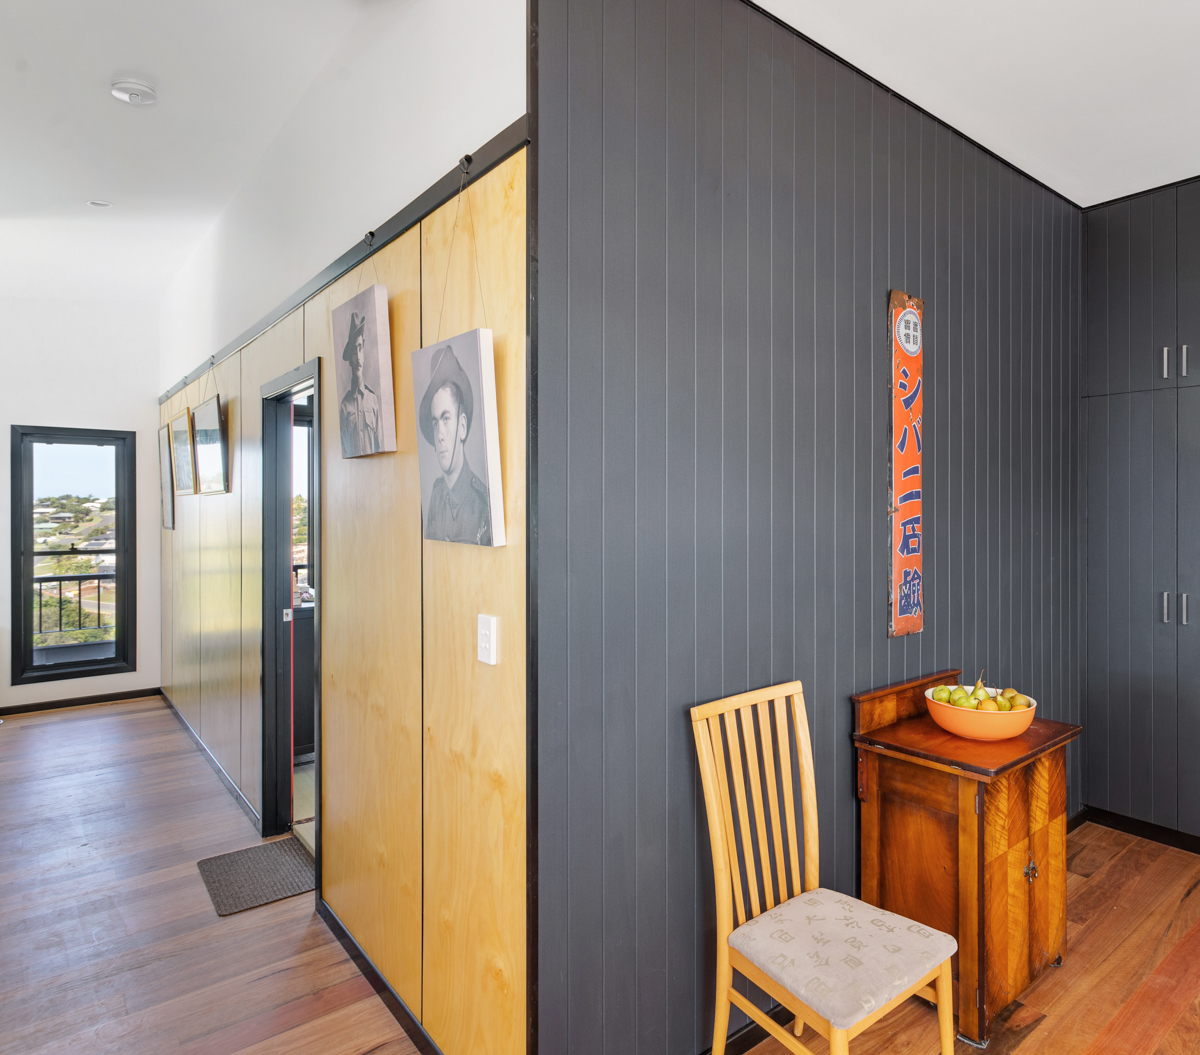 Hallway with plywood lining and grooved wall lining